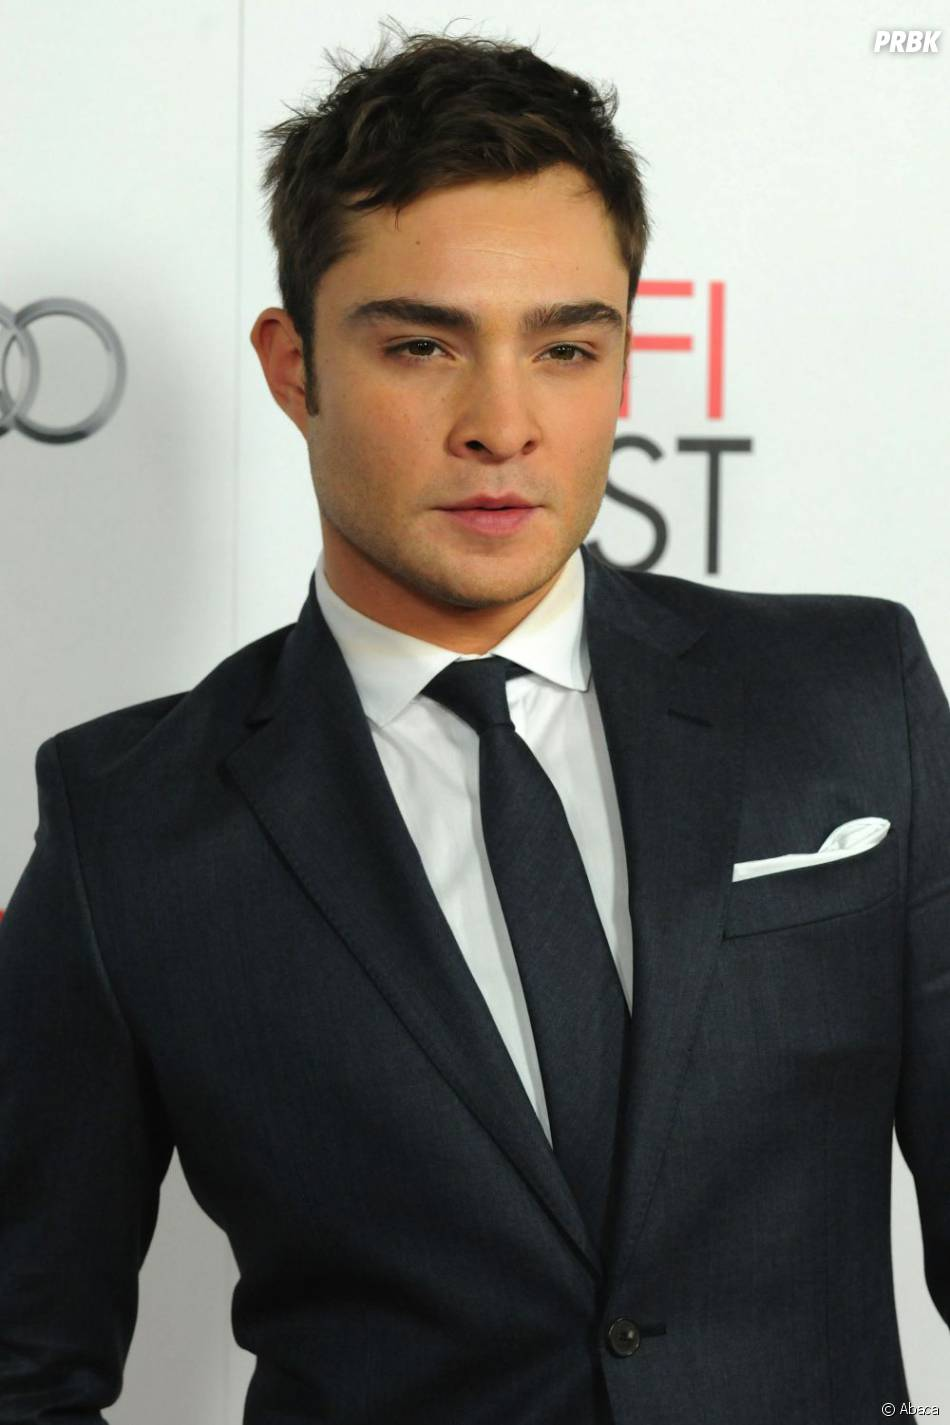 ed westwick au top en costard cravate purebreak. Black Bedroom Furniture Sets. Home Design Ideas